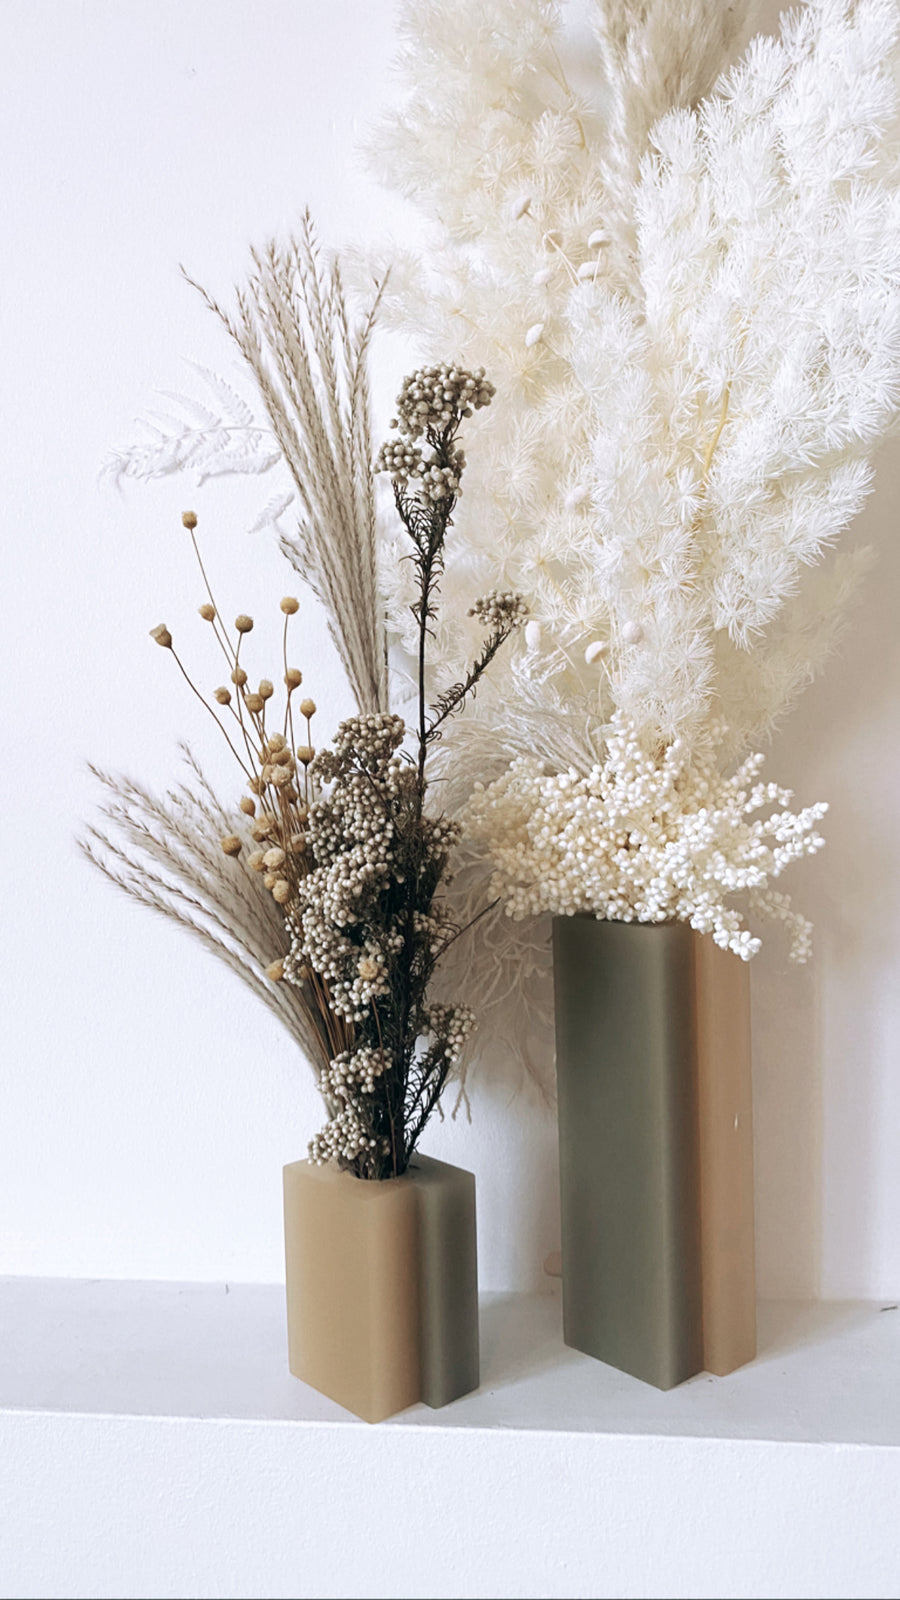 vase arrangements - filled